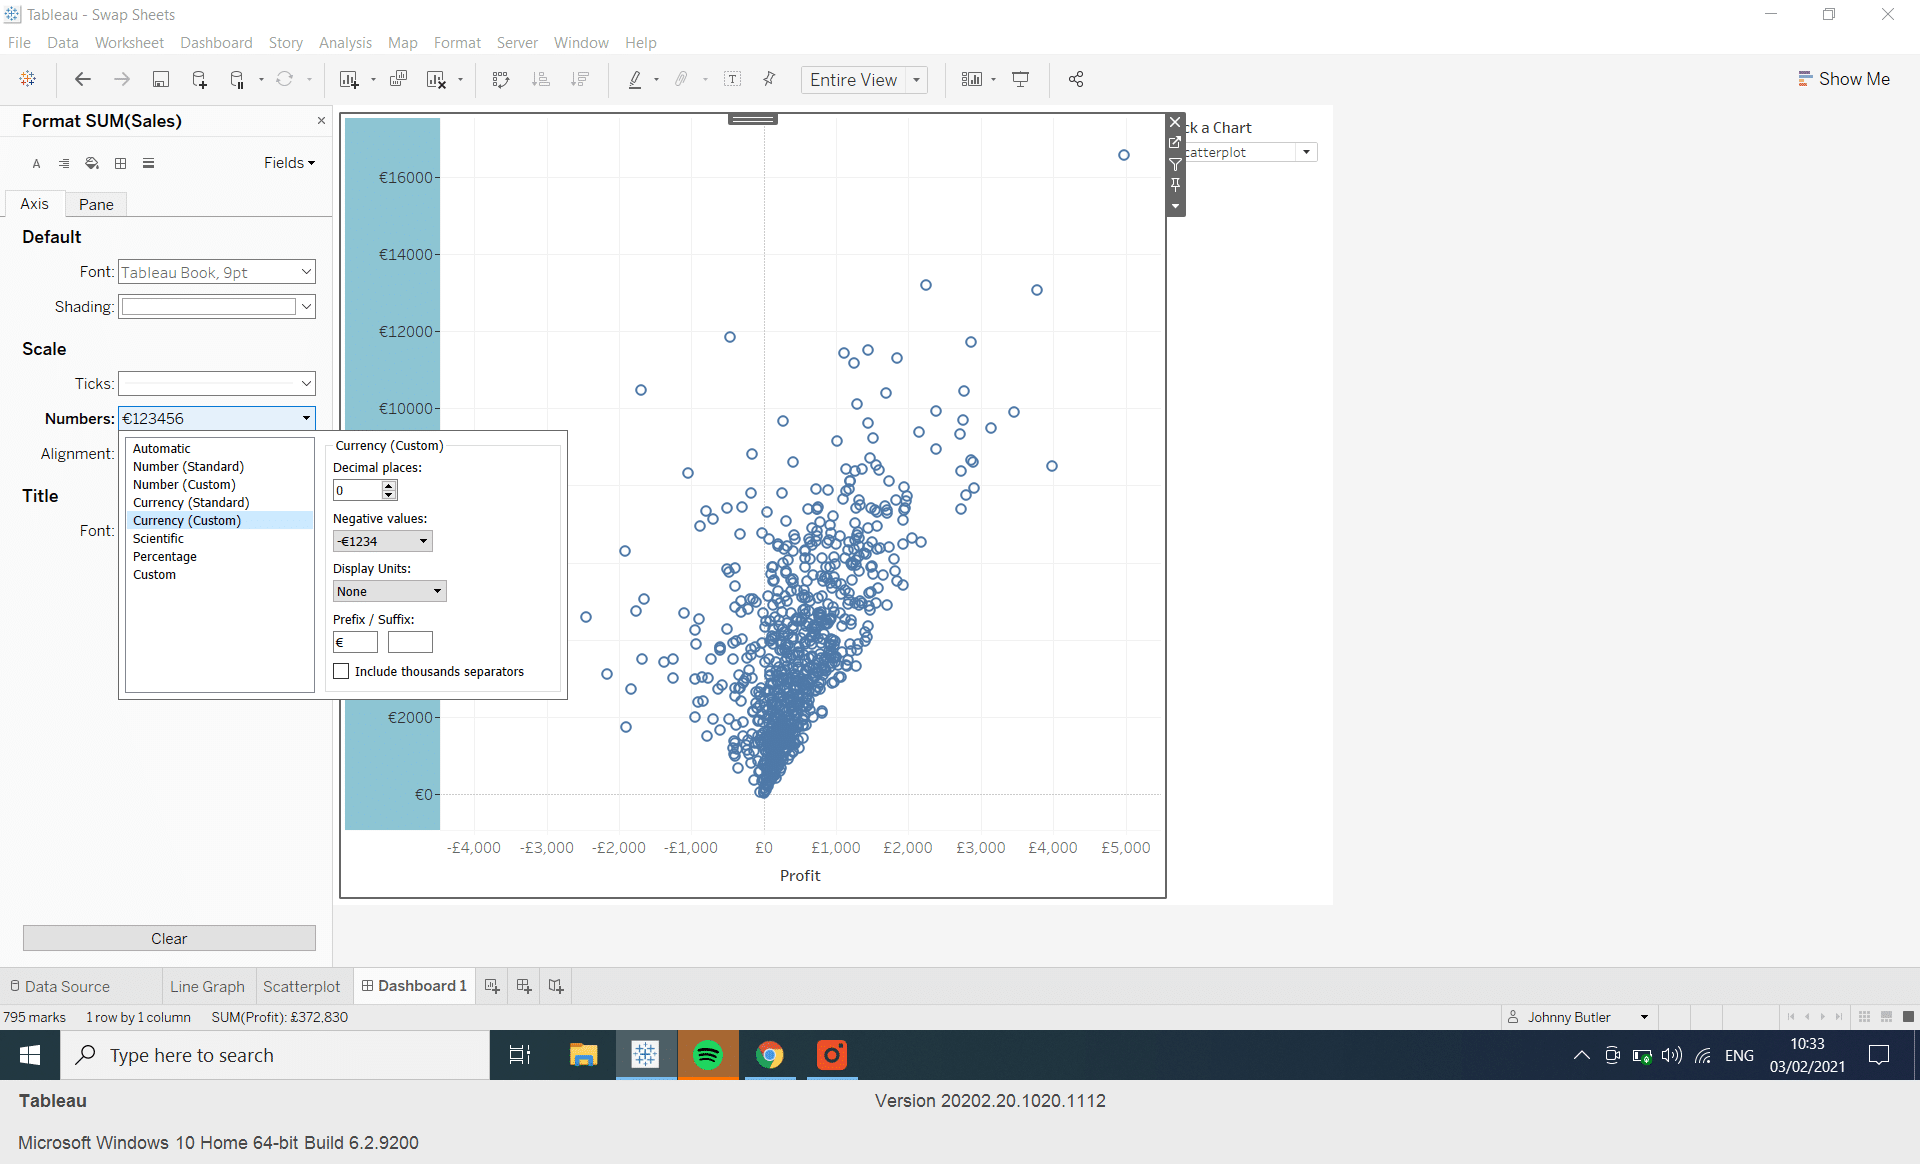 How do I swap sheets in Tableau?